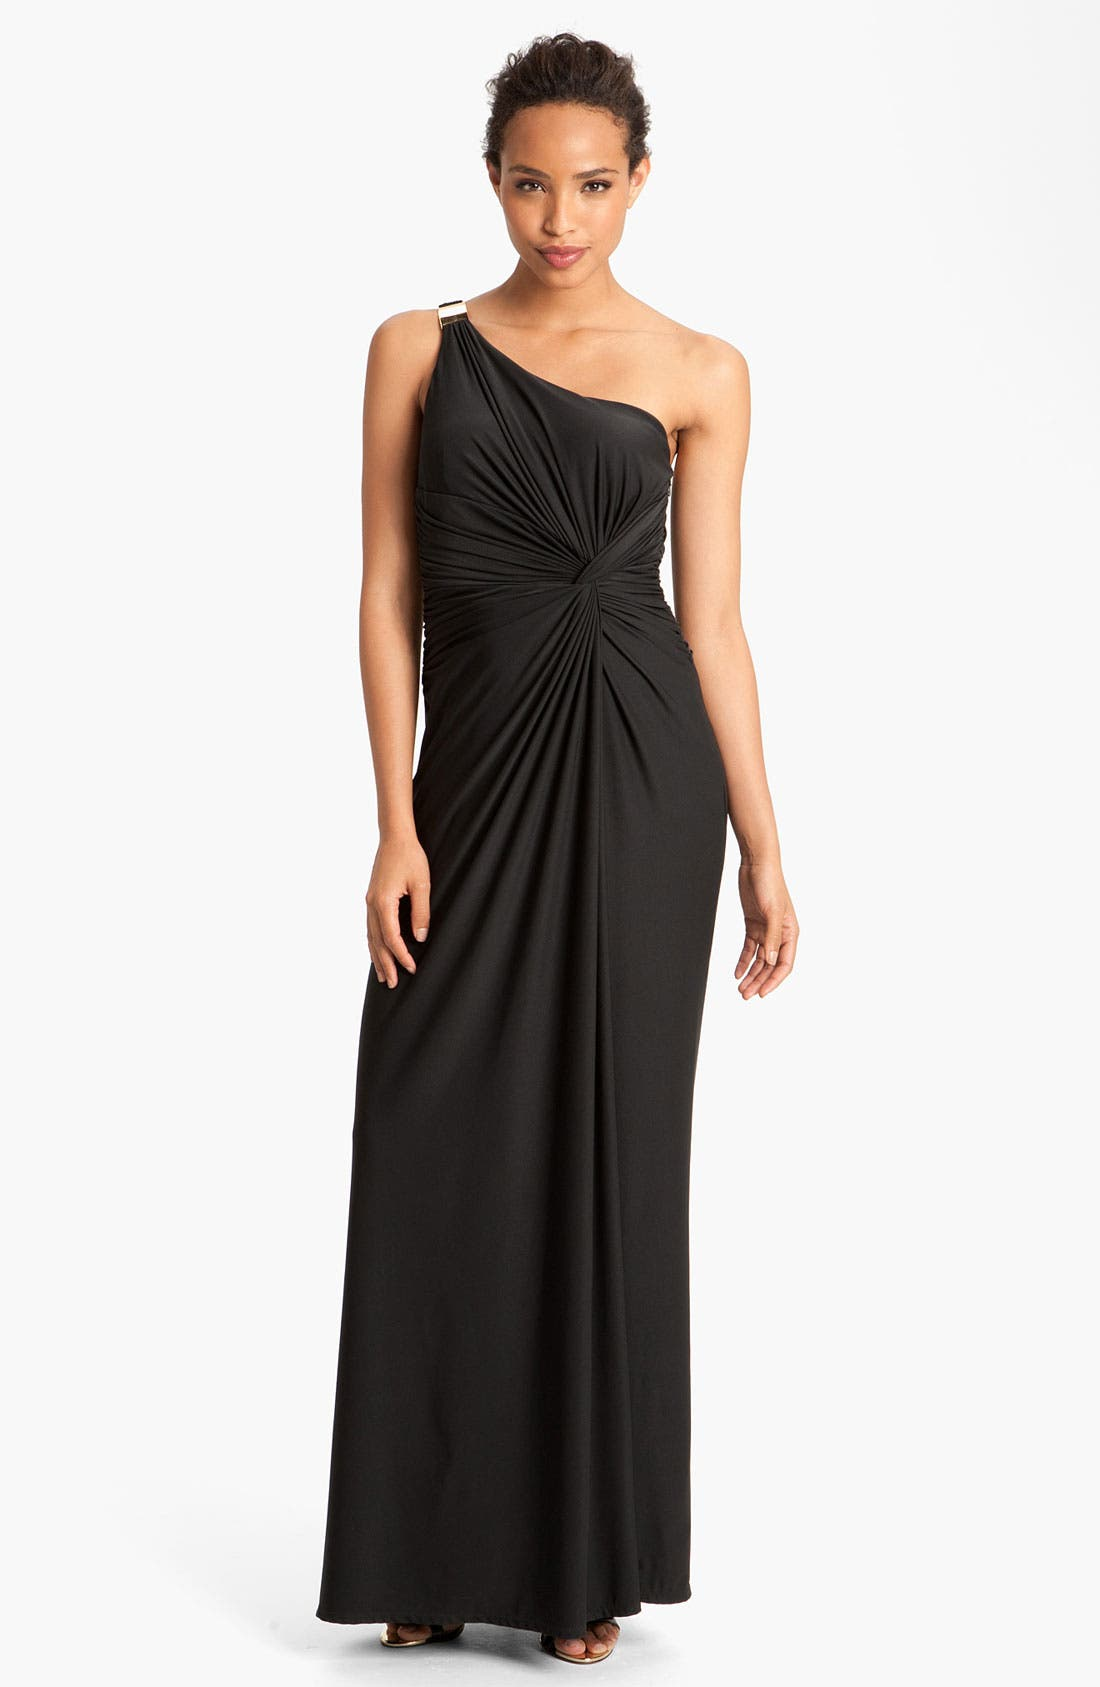 Main Image - Max & Cleo 'Jenny' One Shoulder Jersey Gown